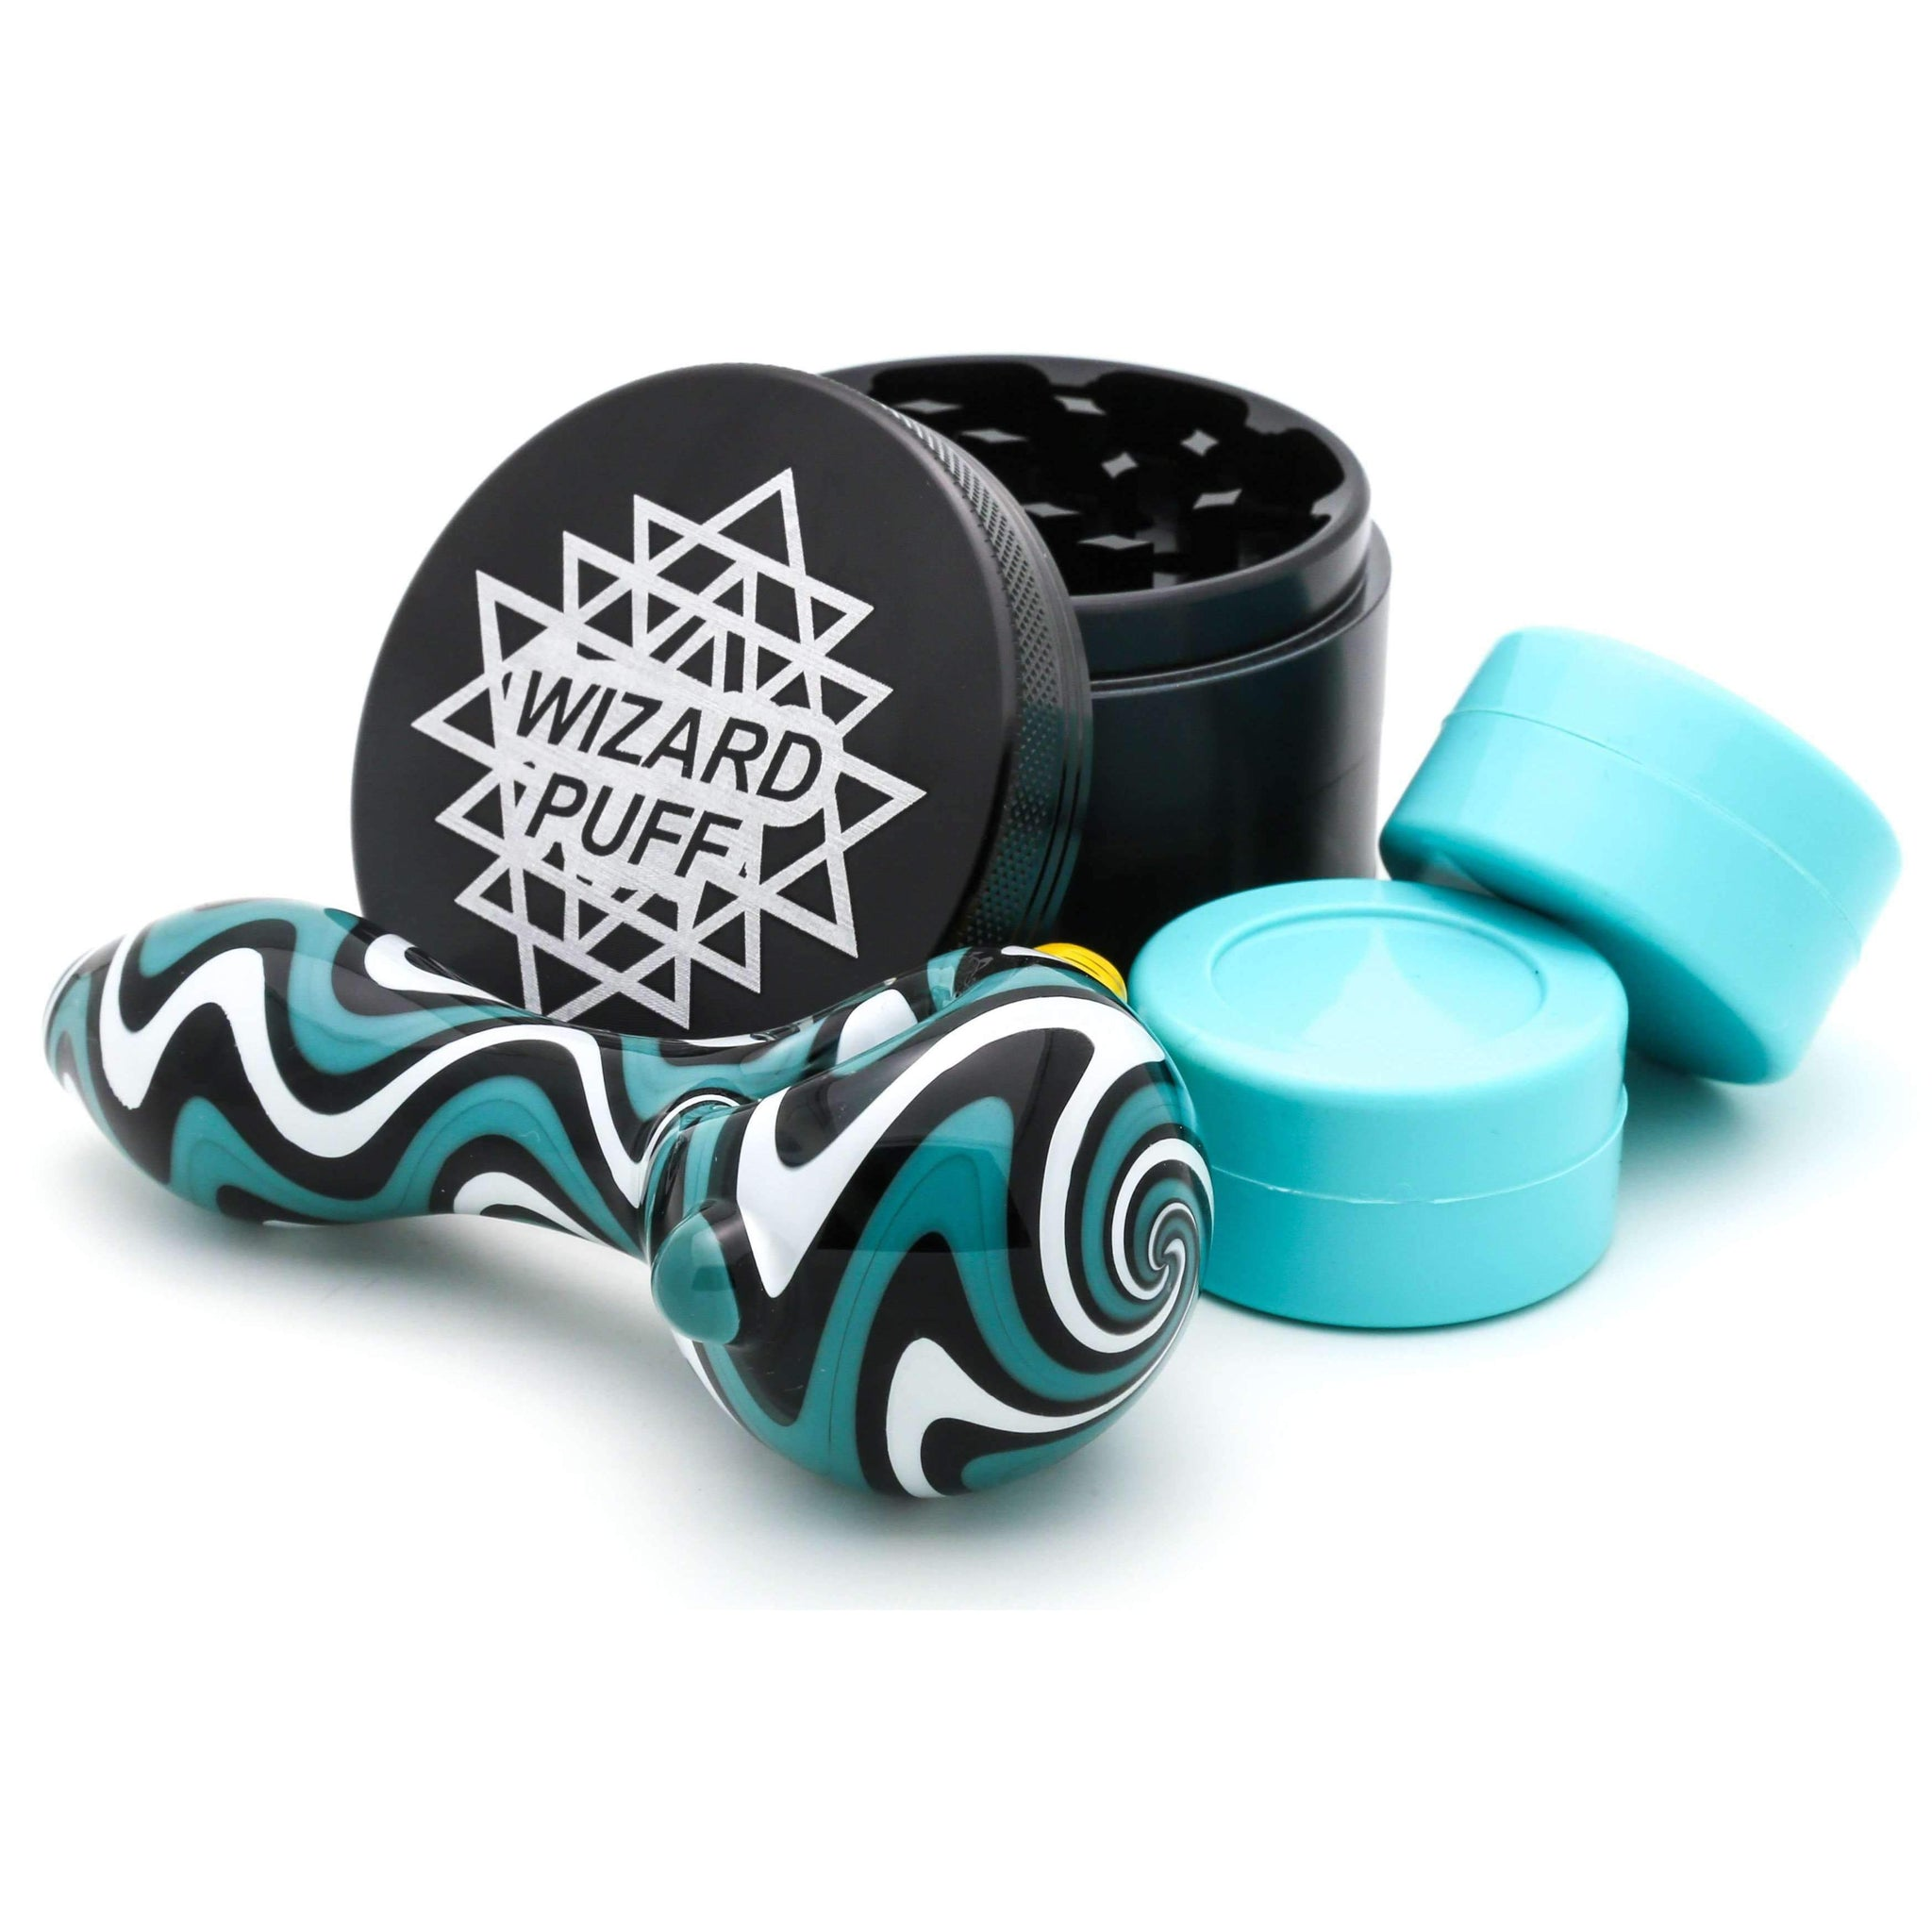 Wizard Puff High Essentials Pipe Kit